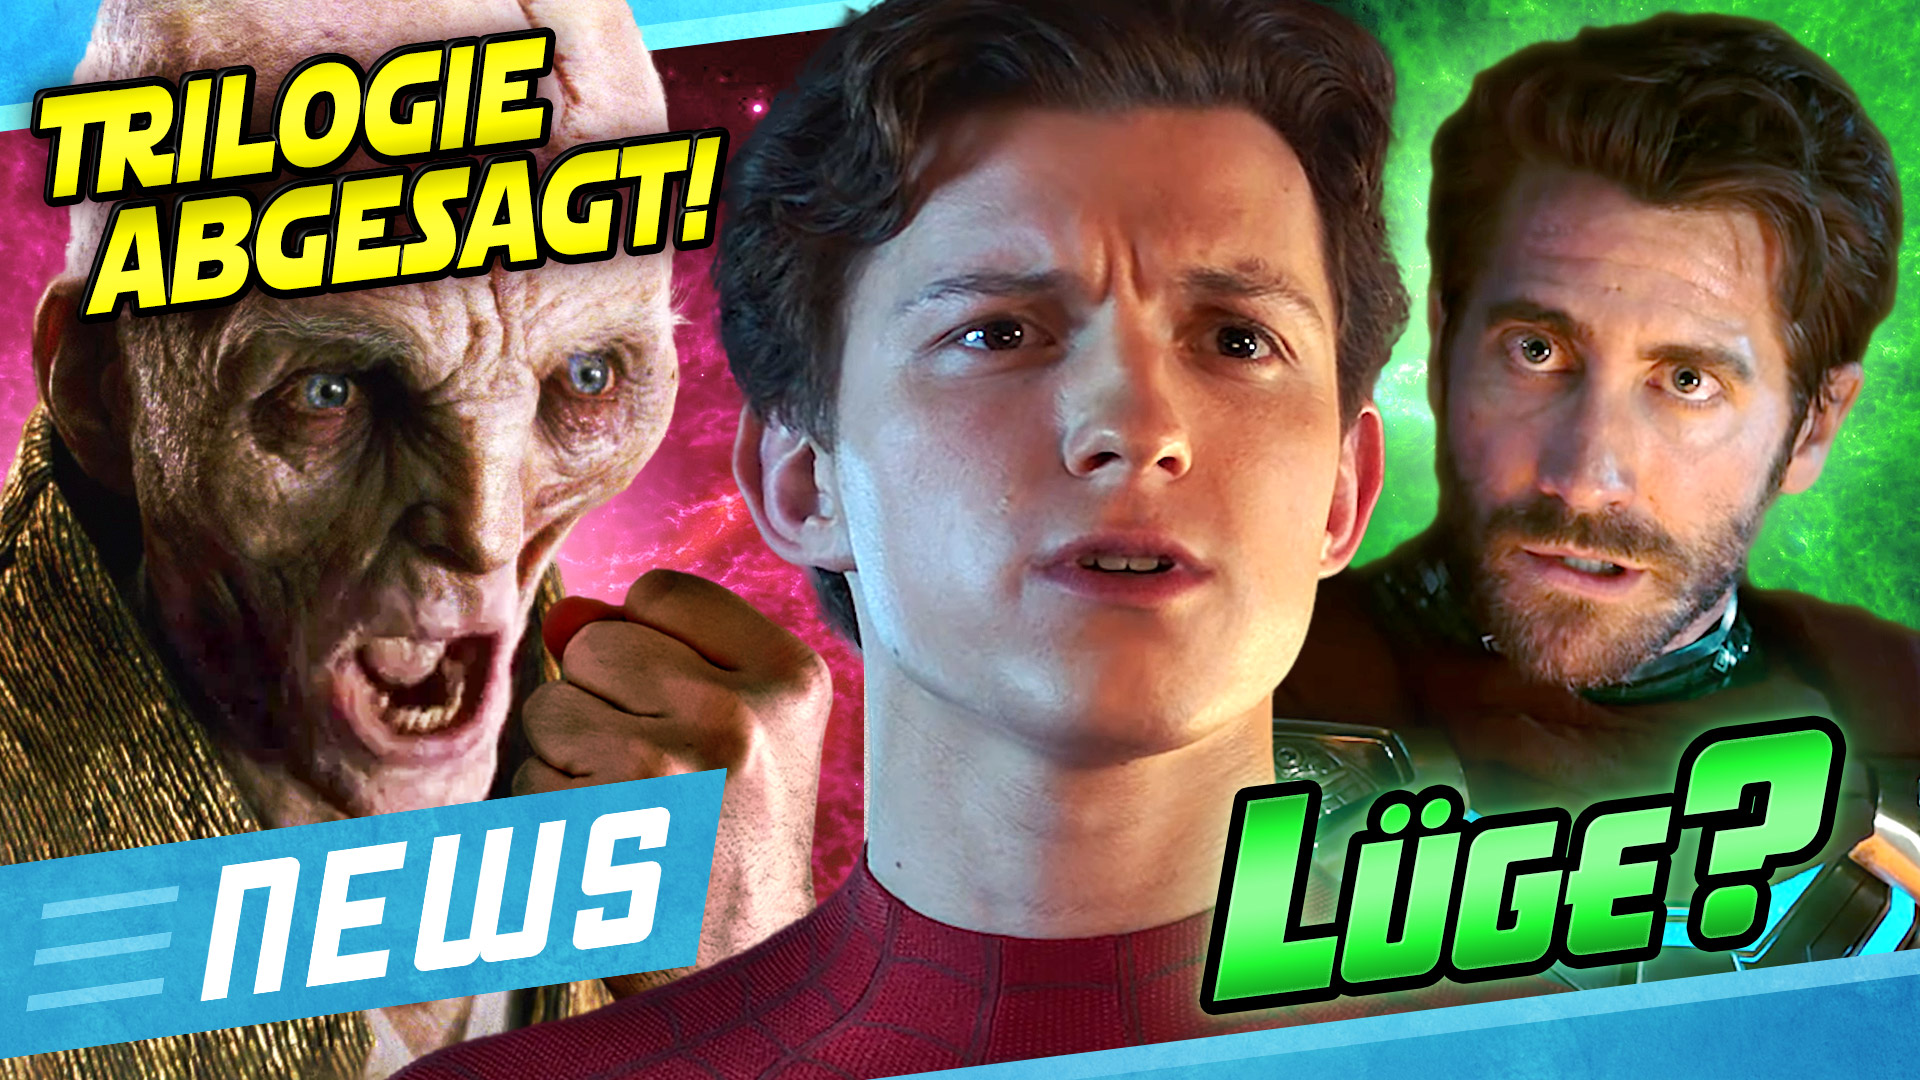 Star Wars Trilogie abgesagt? & Spider-Man Far From Home-Trailer lügt - FLIPPS News